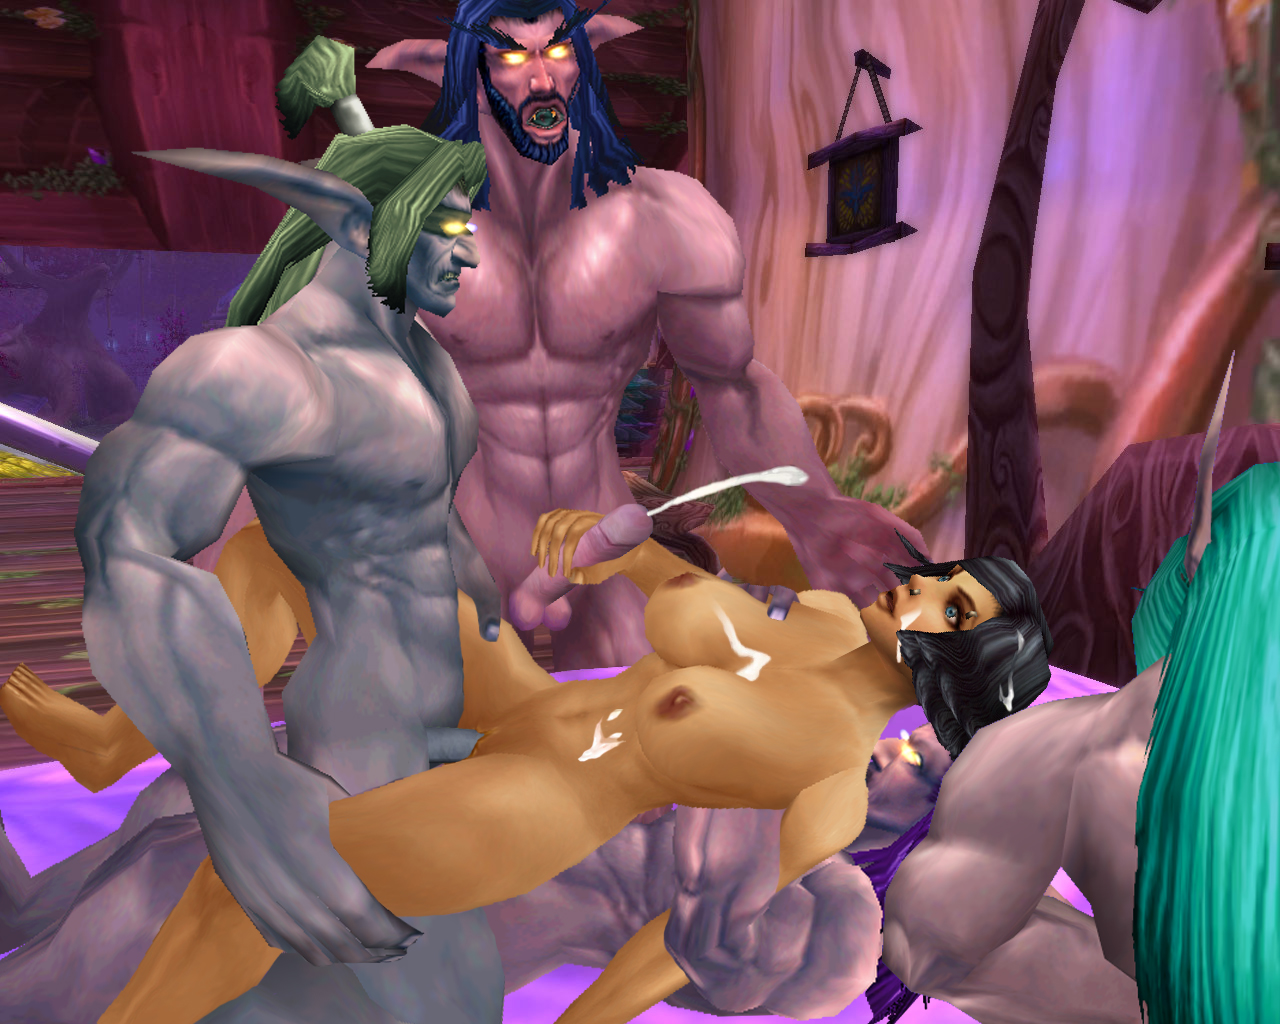 Free Warcraft creature porn videos naked pics